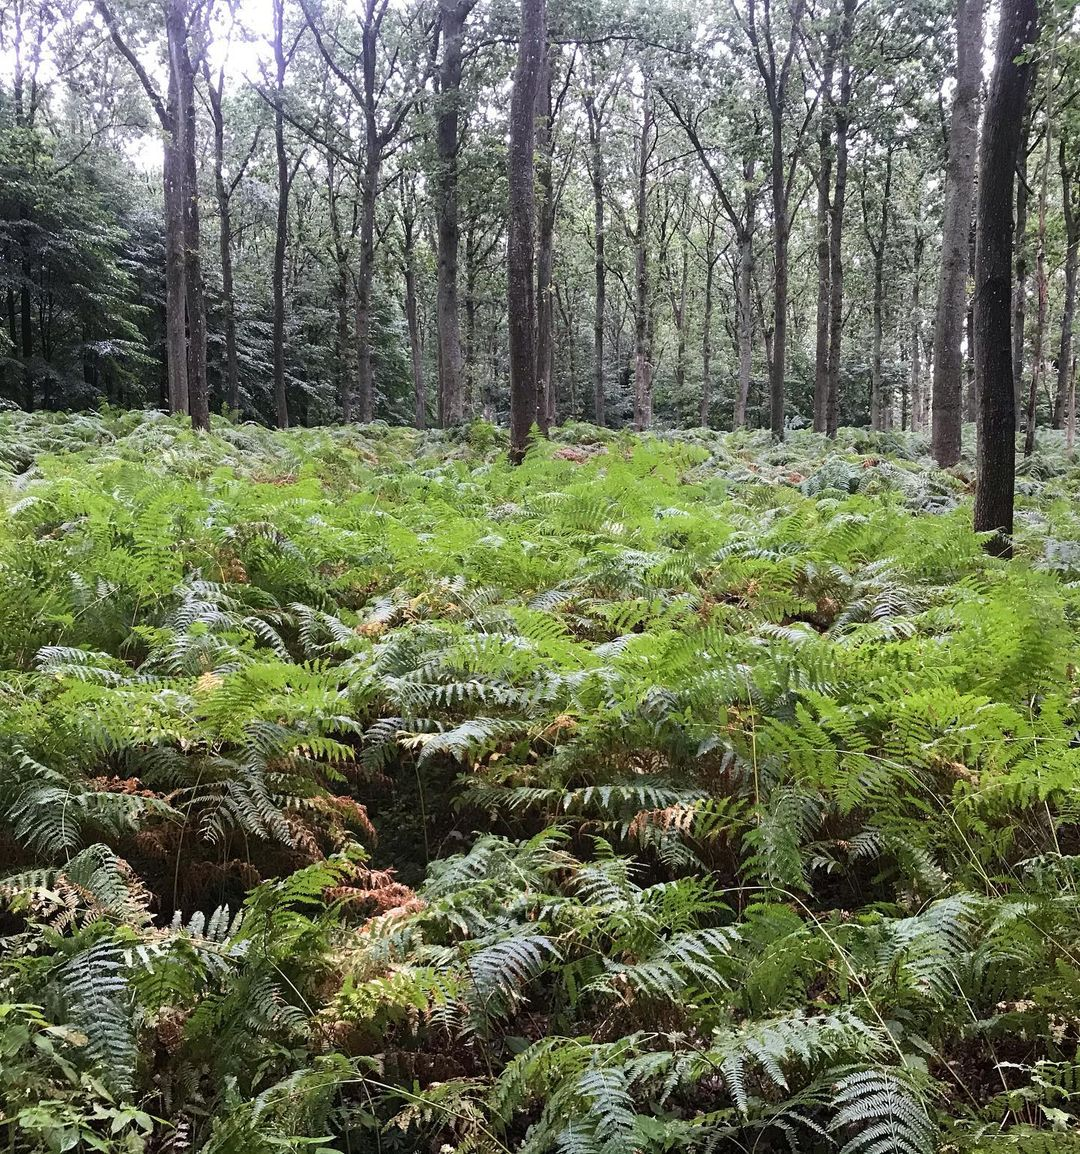 Forest view with tall trees and fern